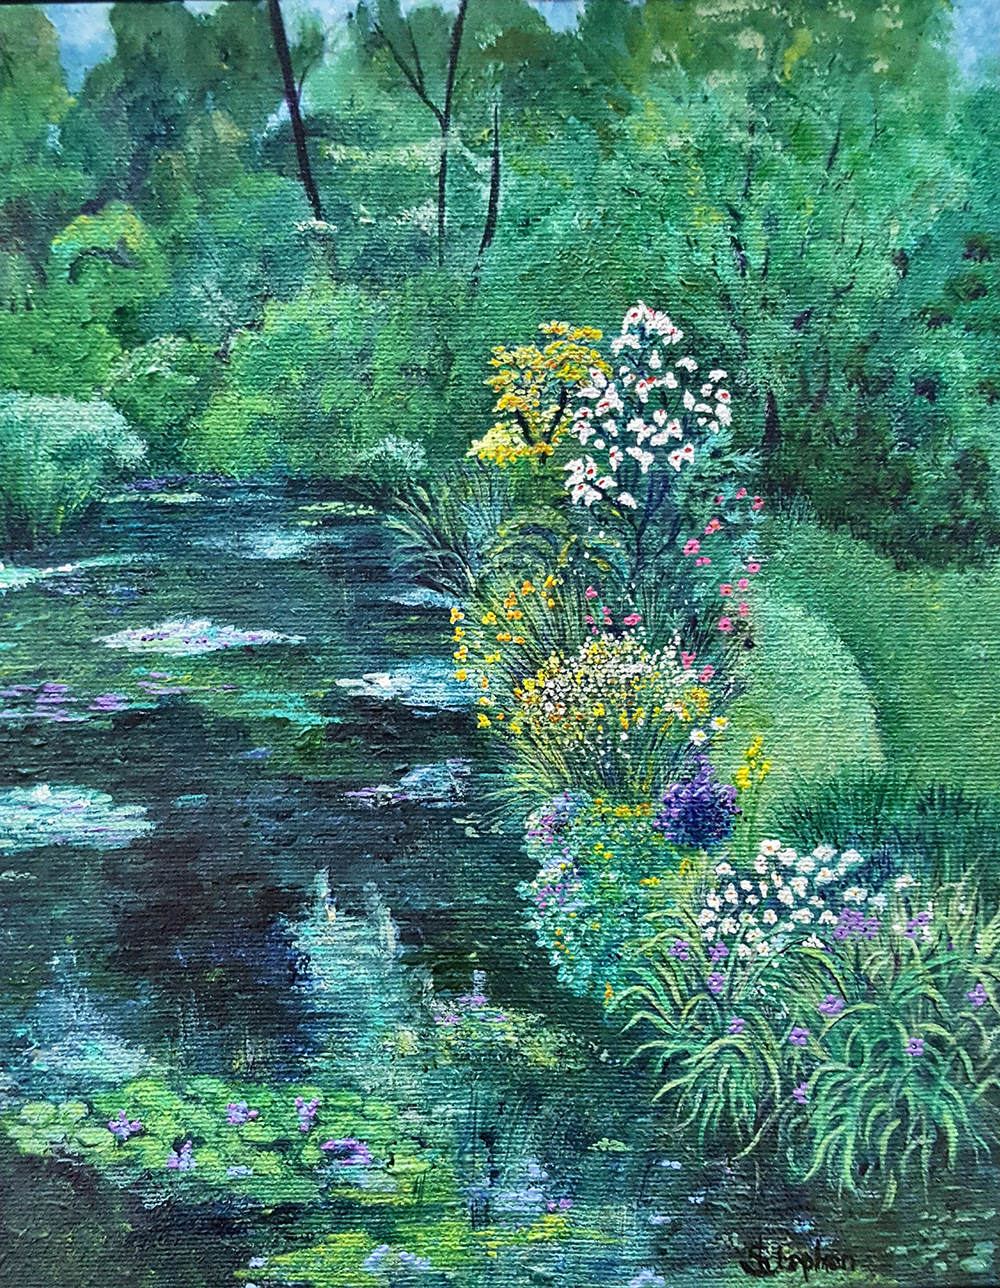 Deborah Stephen Garden at Giverny with Pond